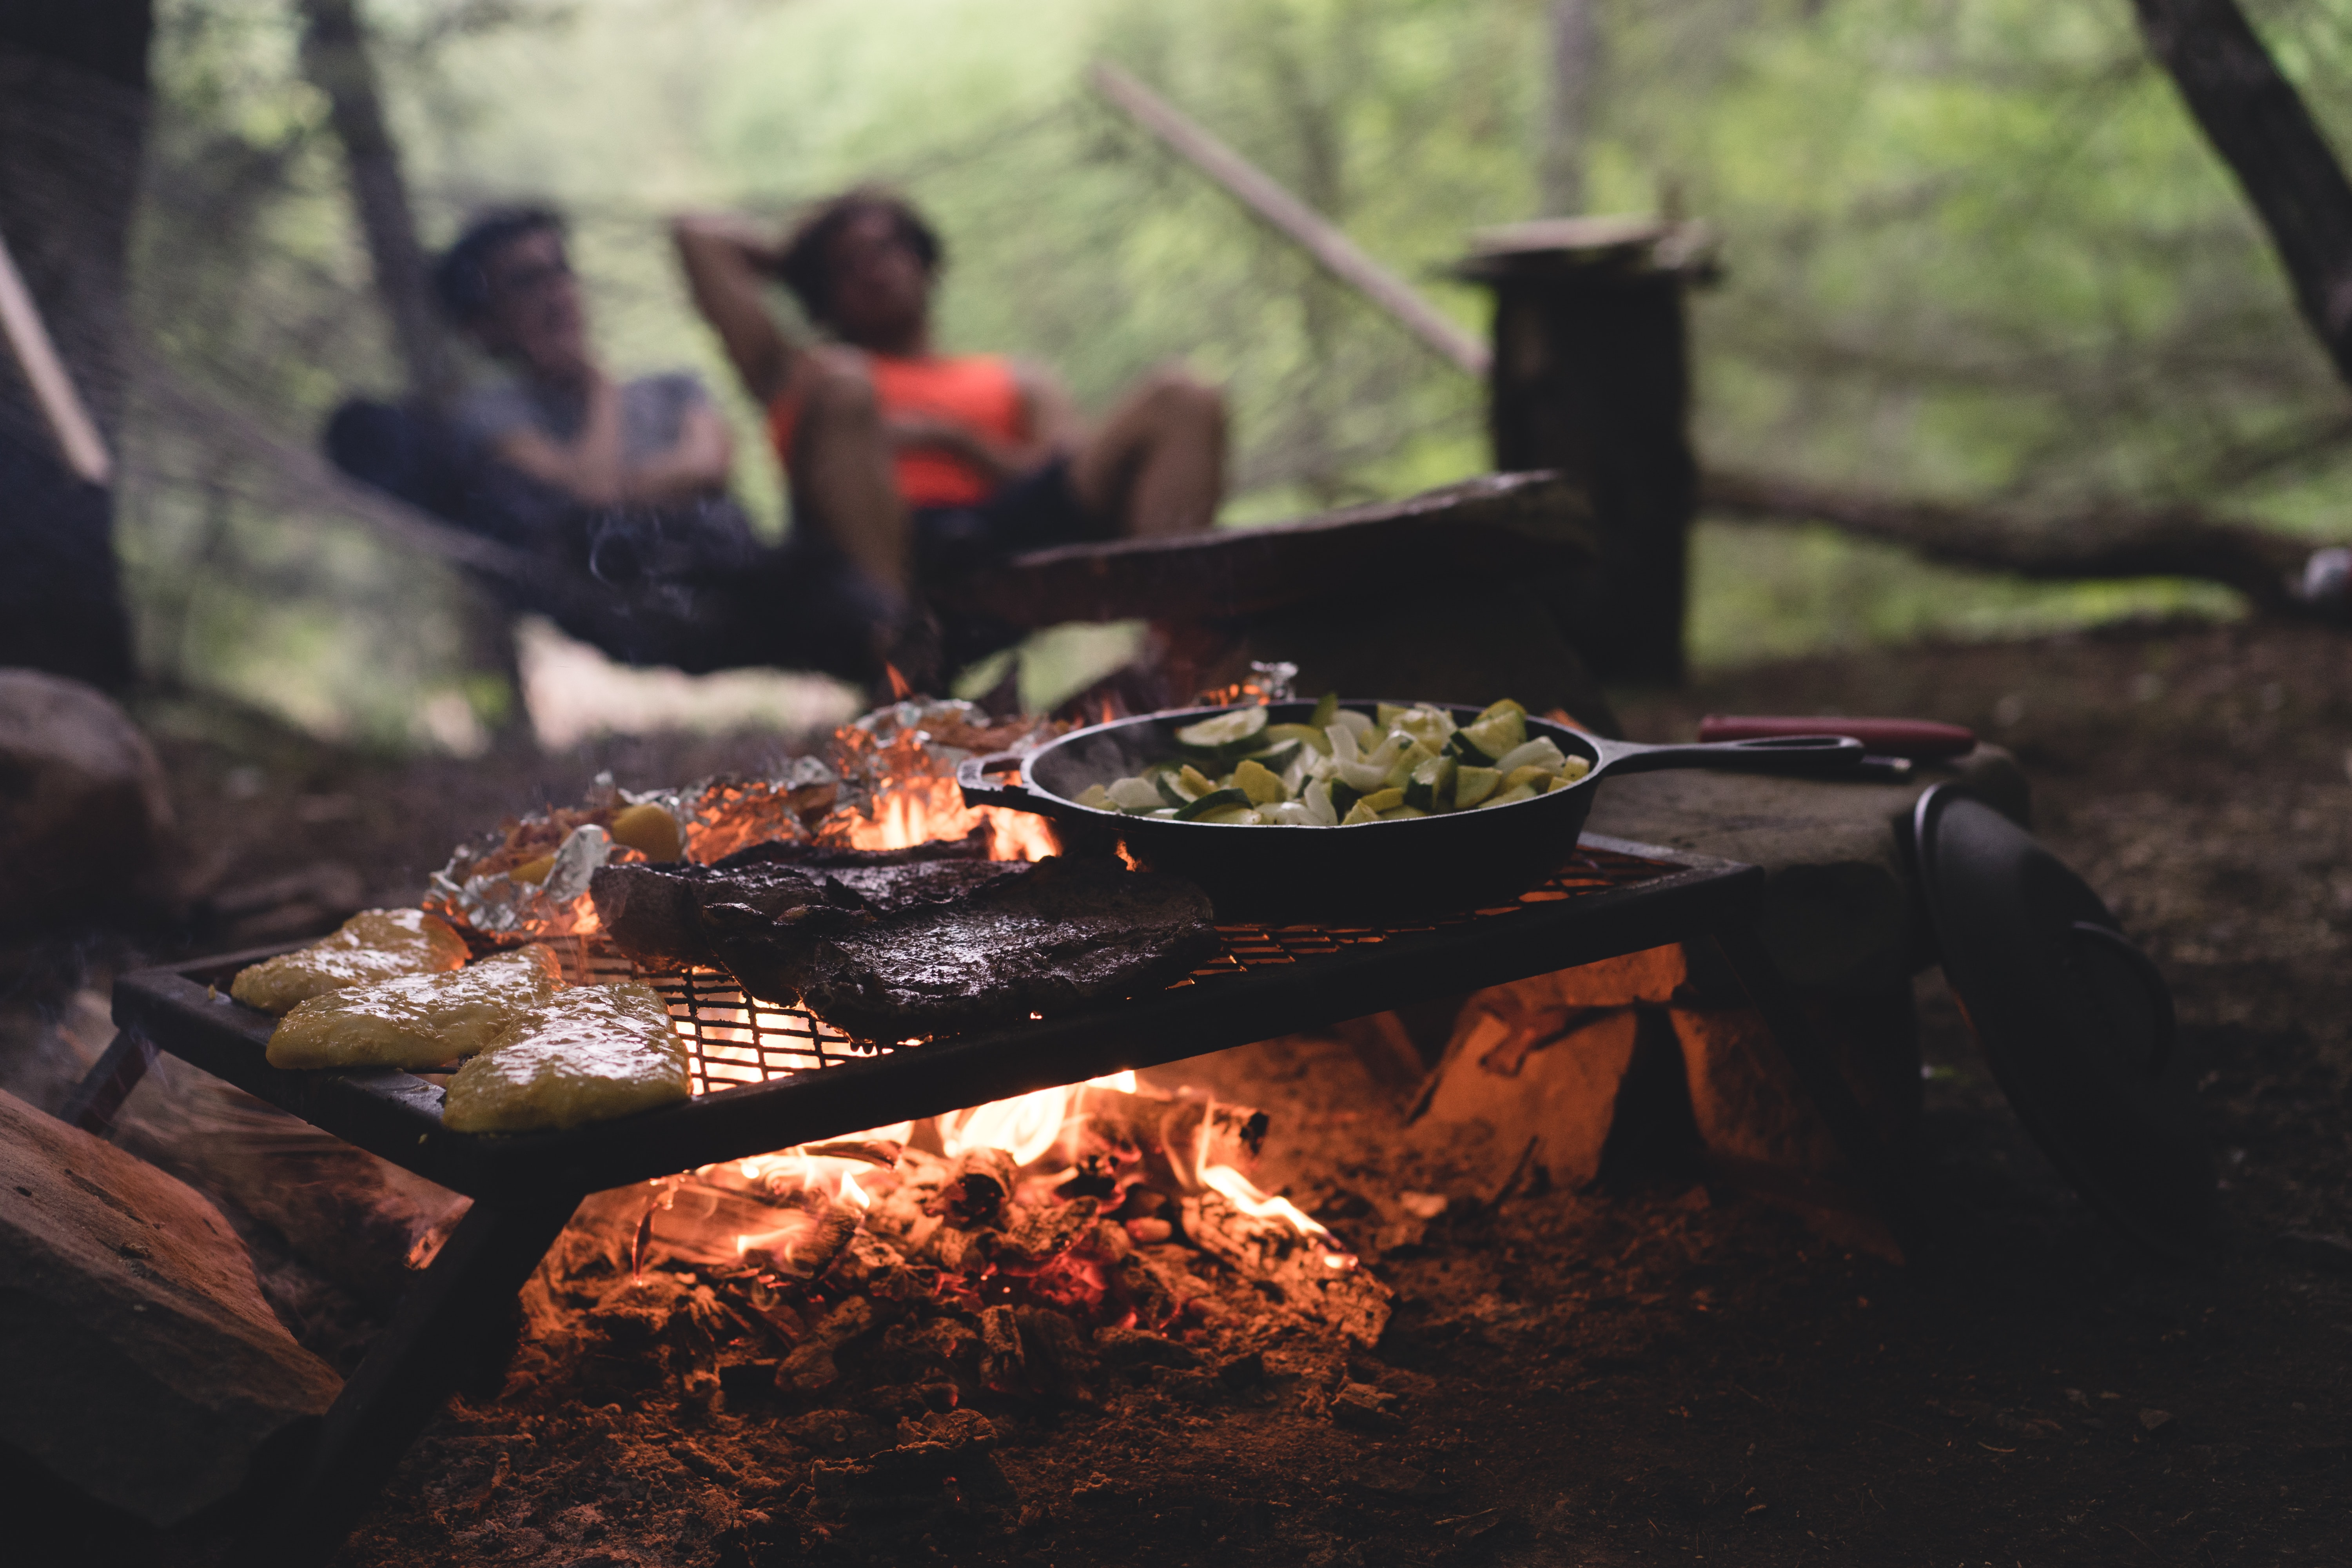 Meat, vegetables, and other food grill over campfire while relaxing in the woods